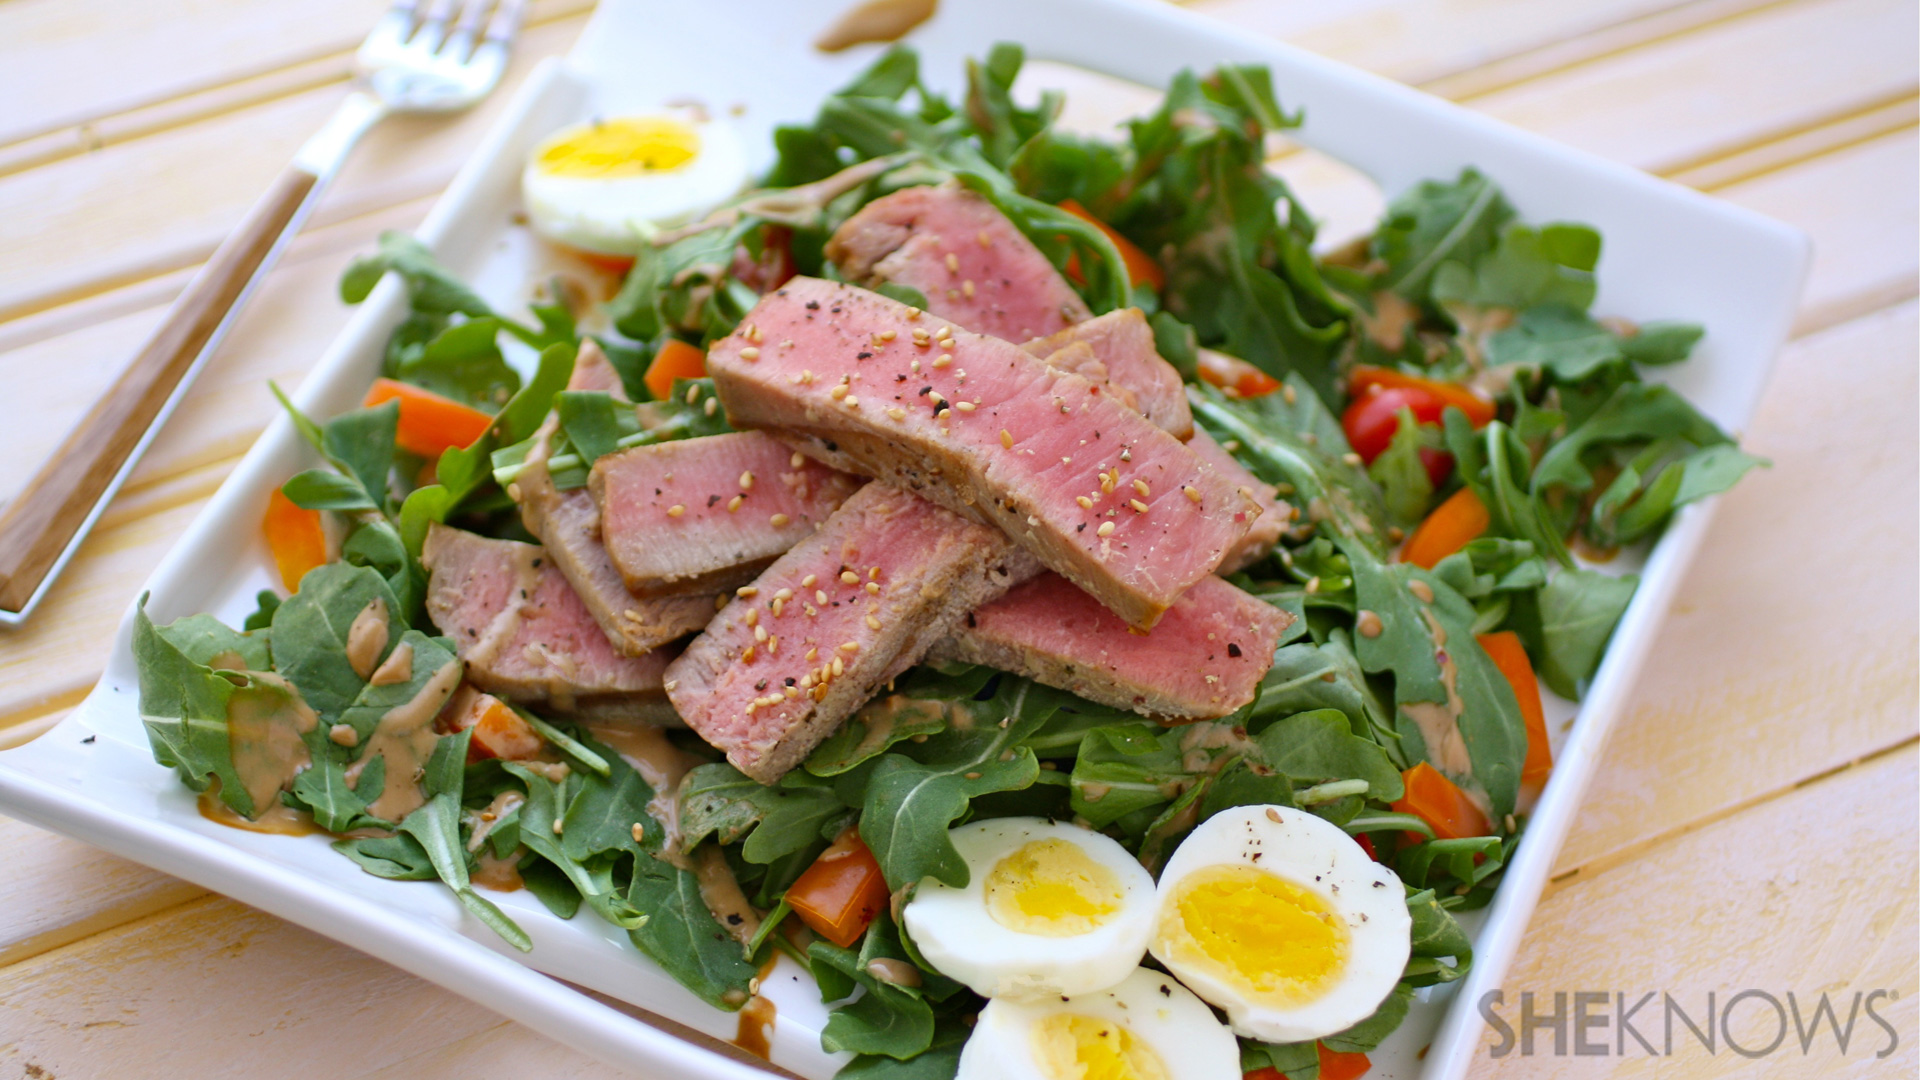 Gluten-free grilled tuna salad with creamy sesame-garlic dressing recipe